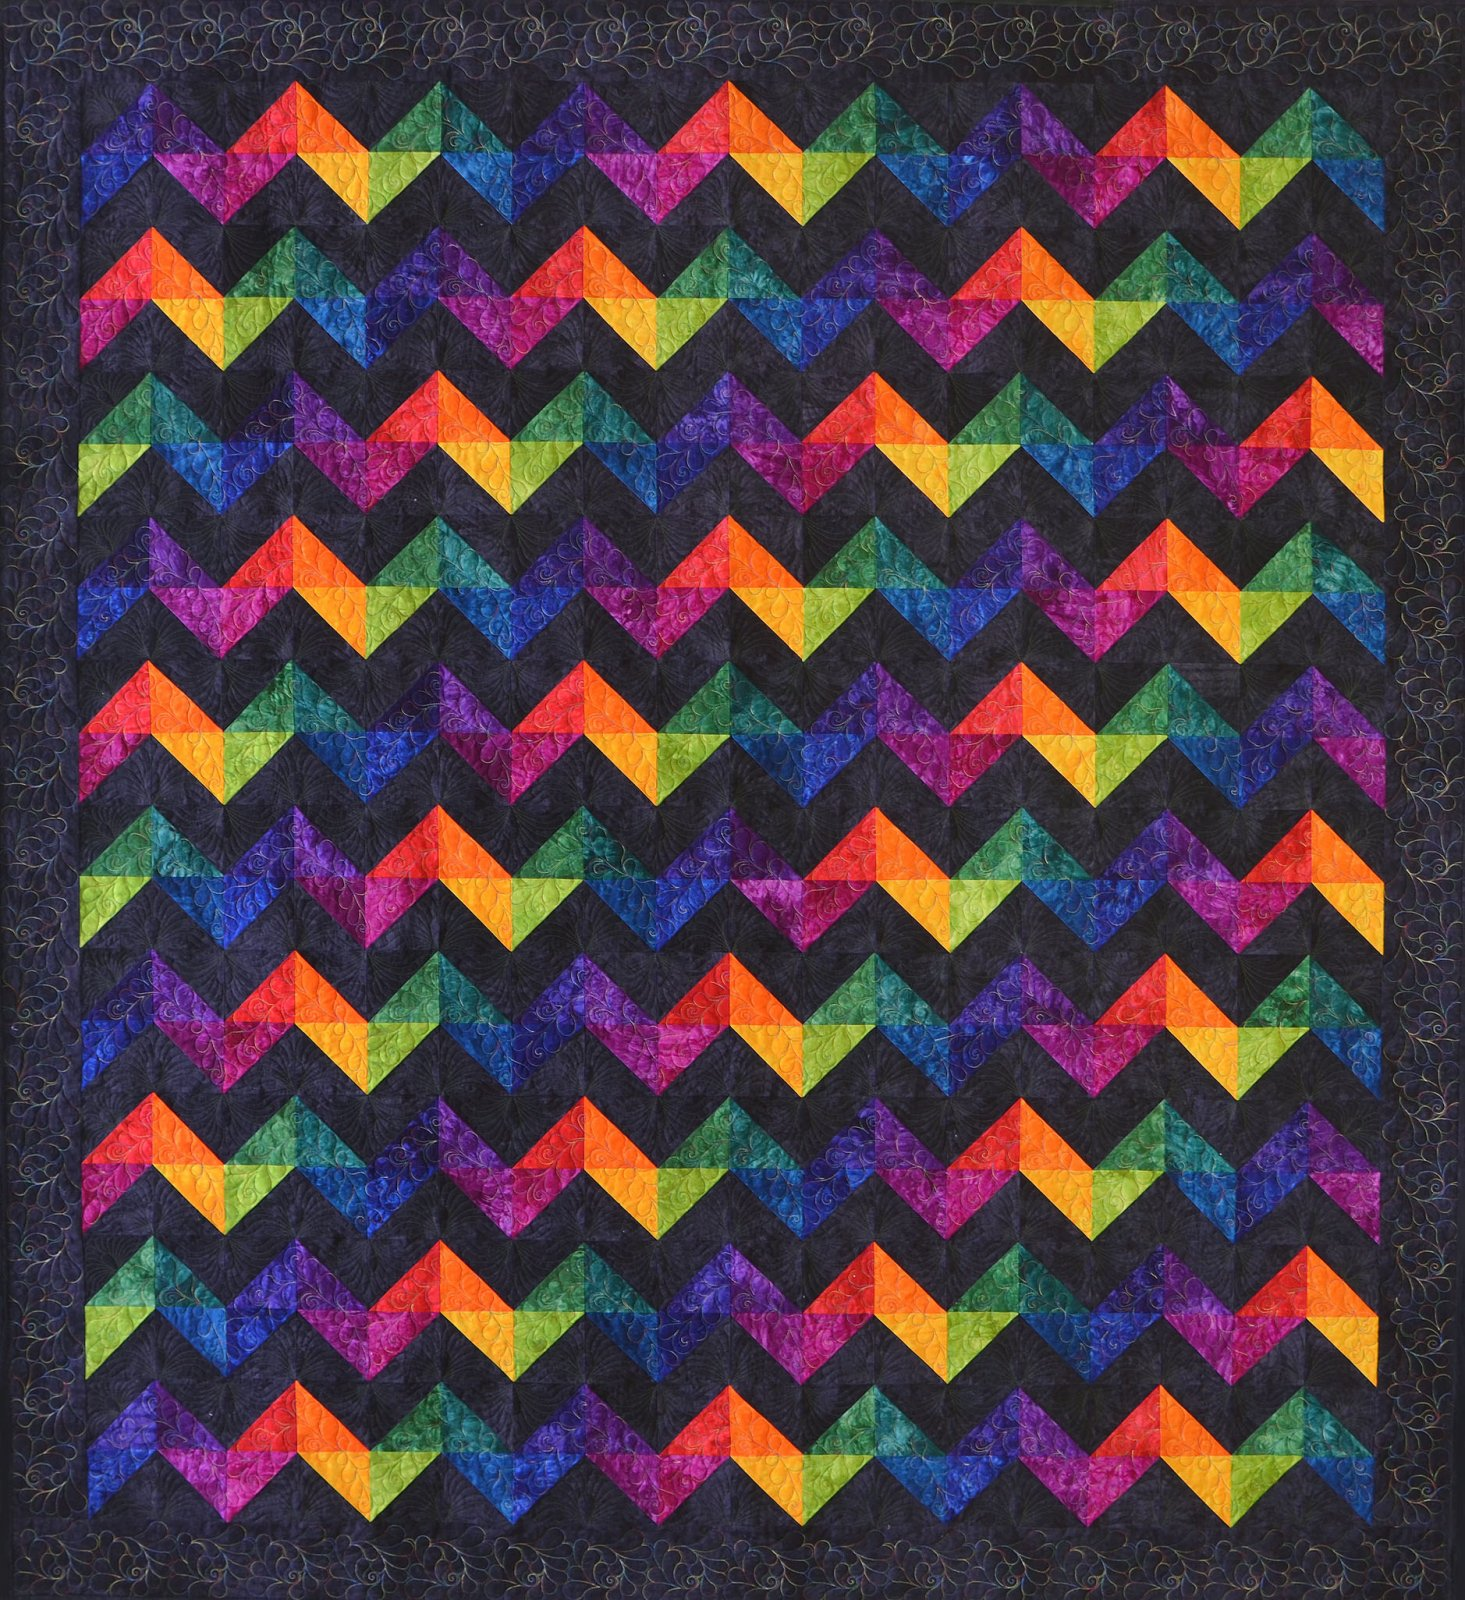 Rave Wave Quilt Kit